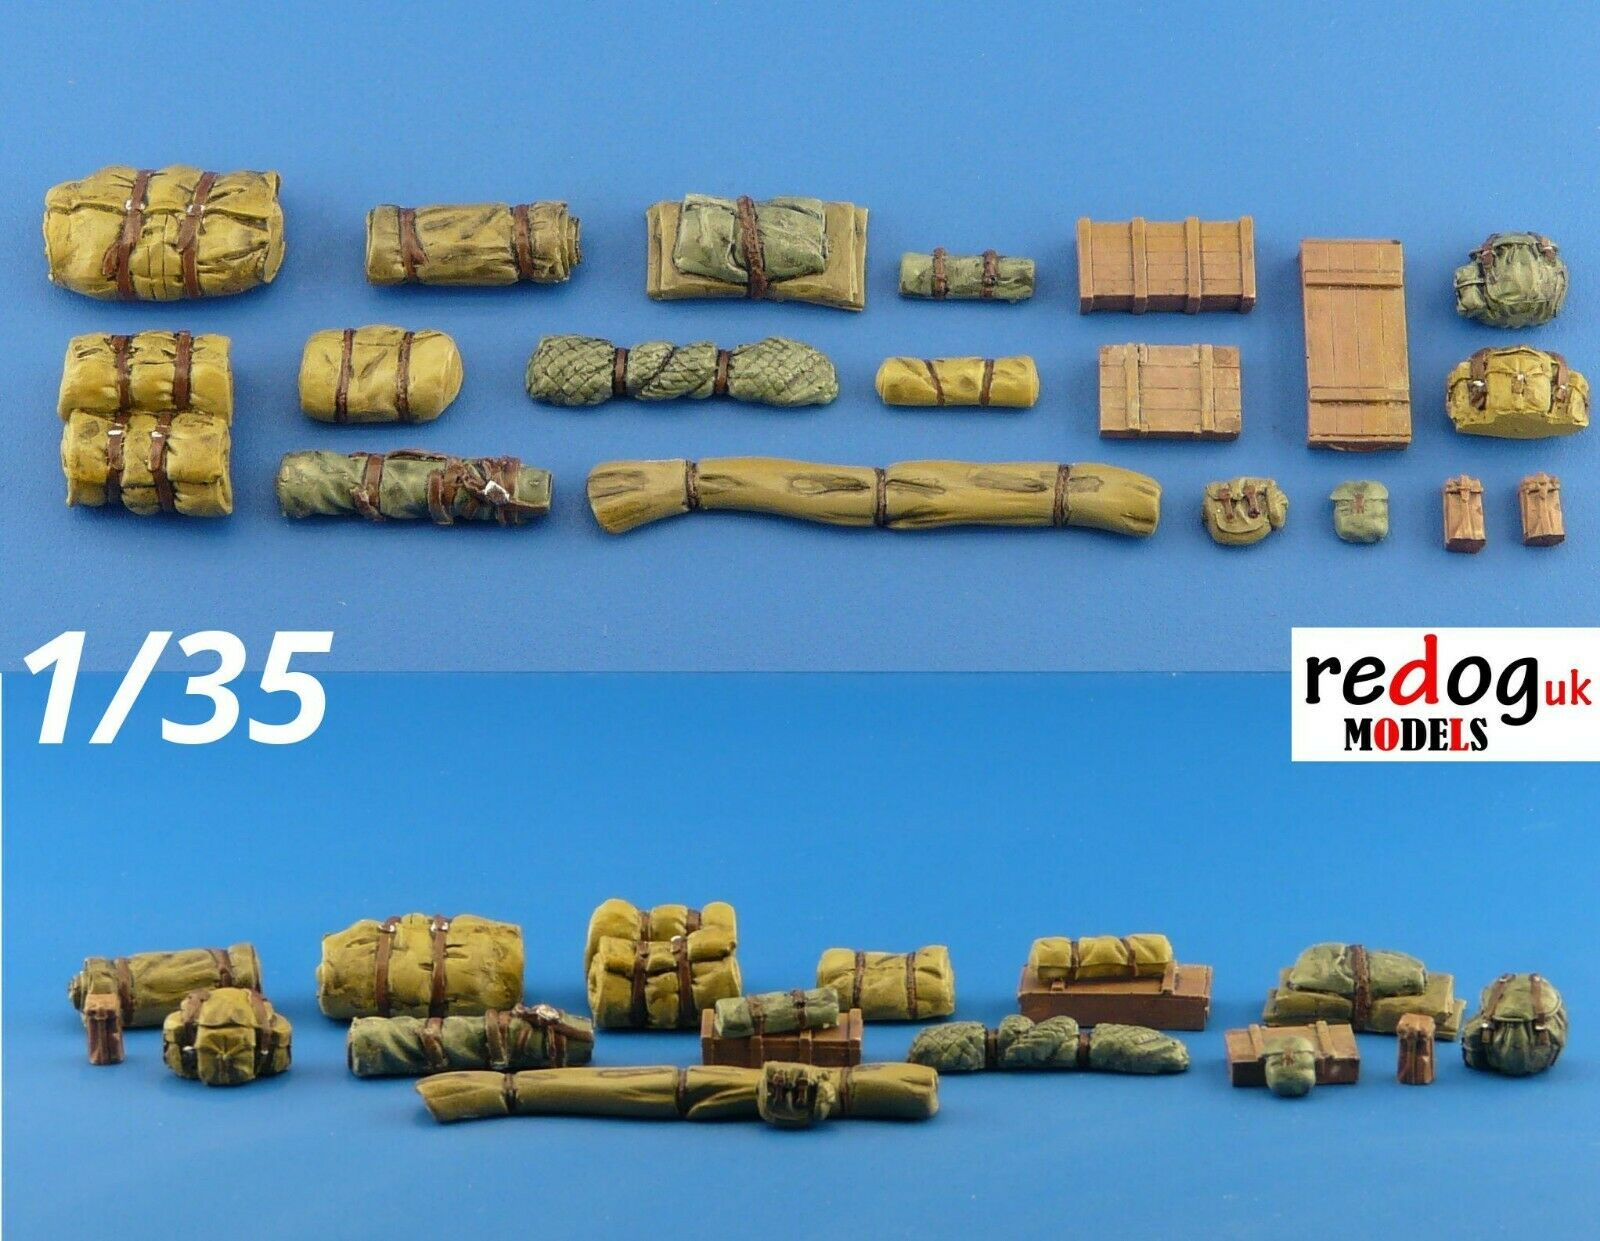 1/35 Military Scale Modelling Resin Stowage Kit Diorama Accessories Kit 4 - redoguk